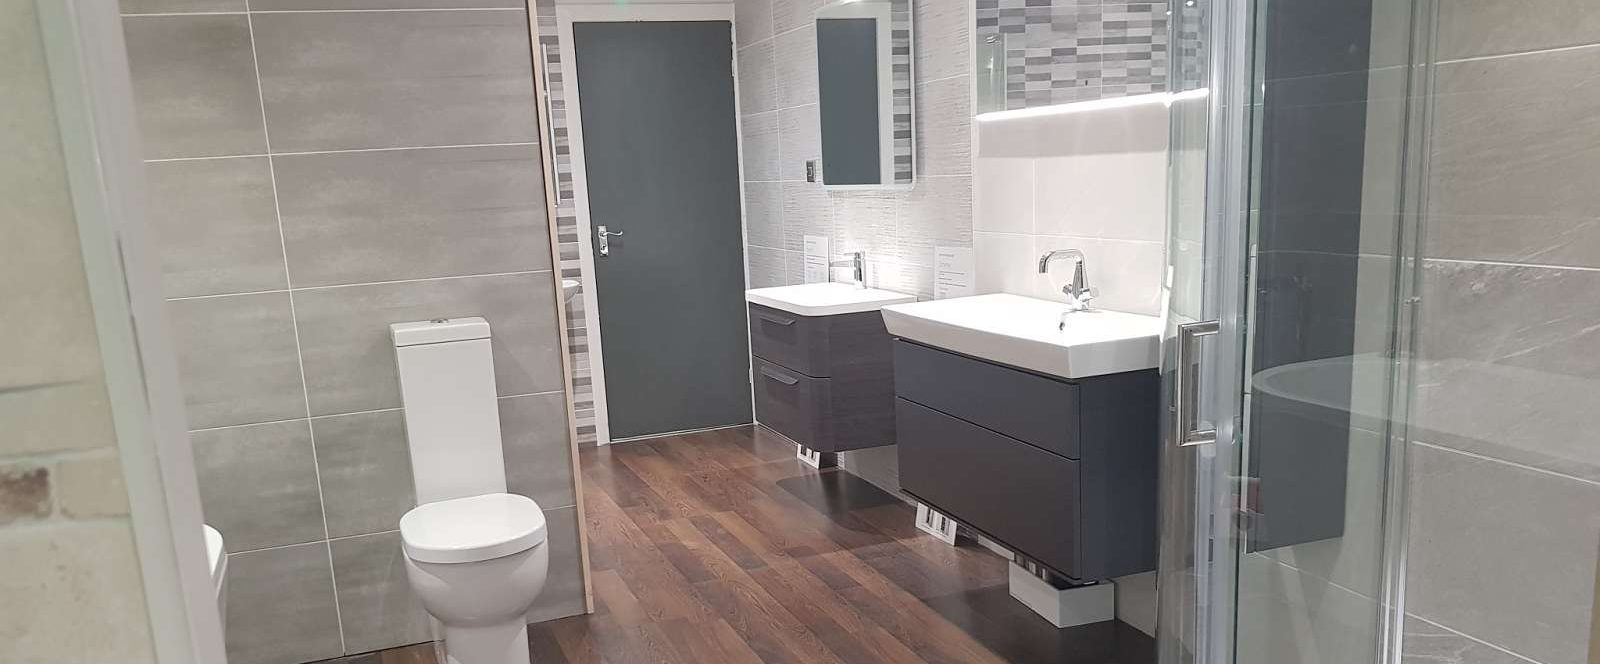 bathroom showroom at Bingley Yorkshire